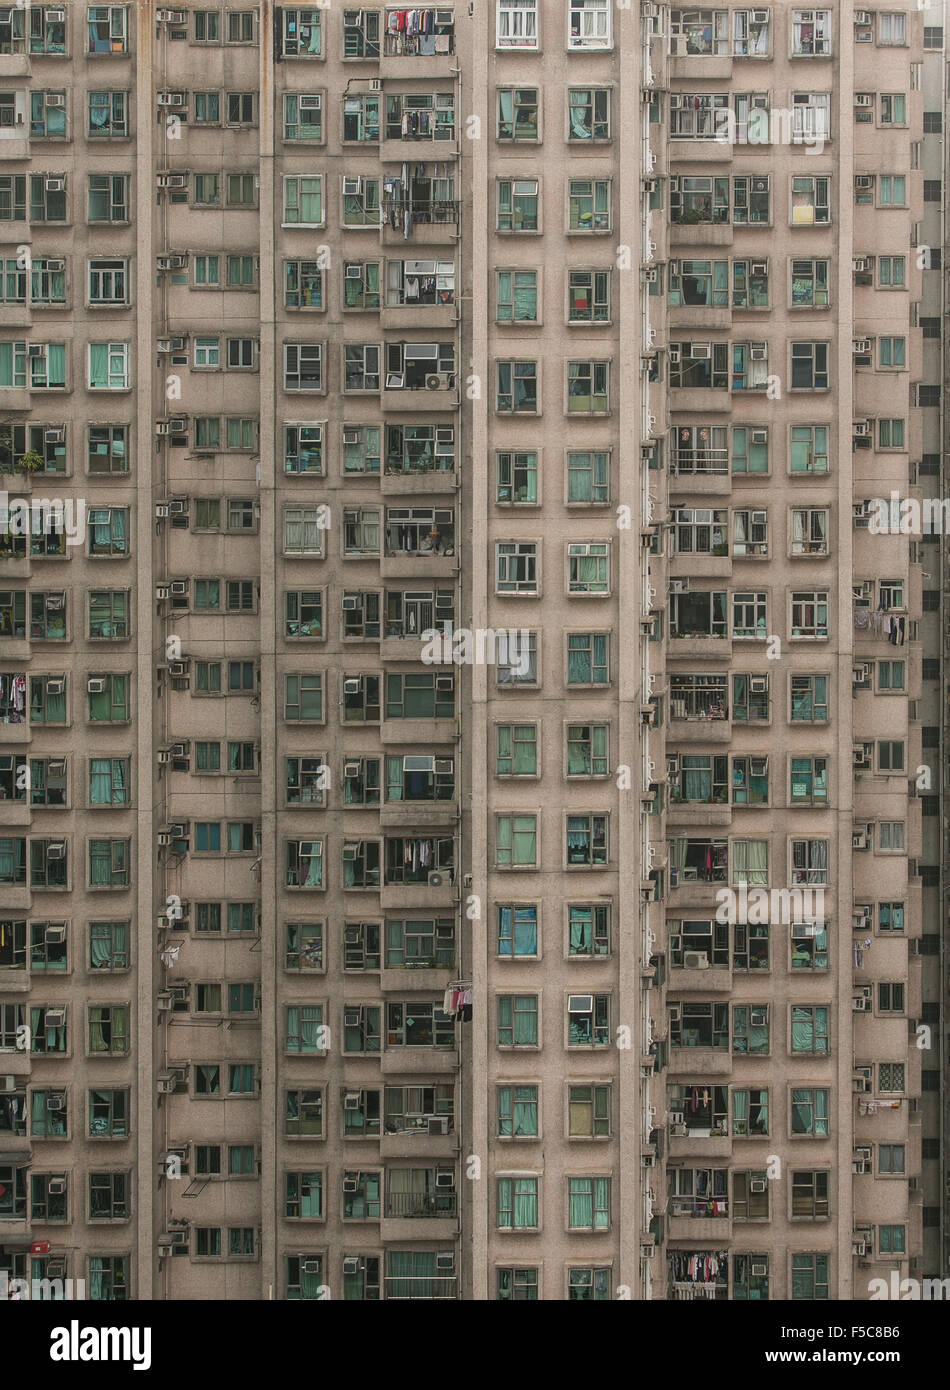 A residential building in Hong Kong that shows the tight living conditions in an extremely dense city. - Stock Image